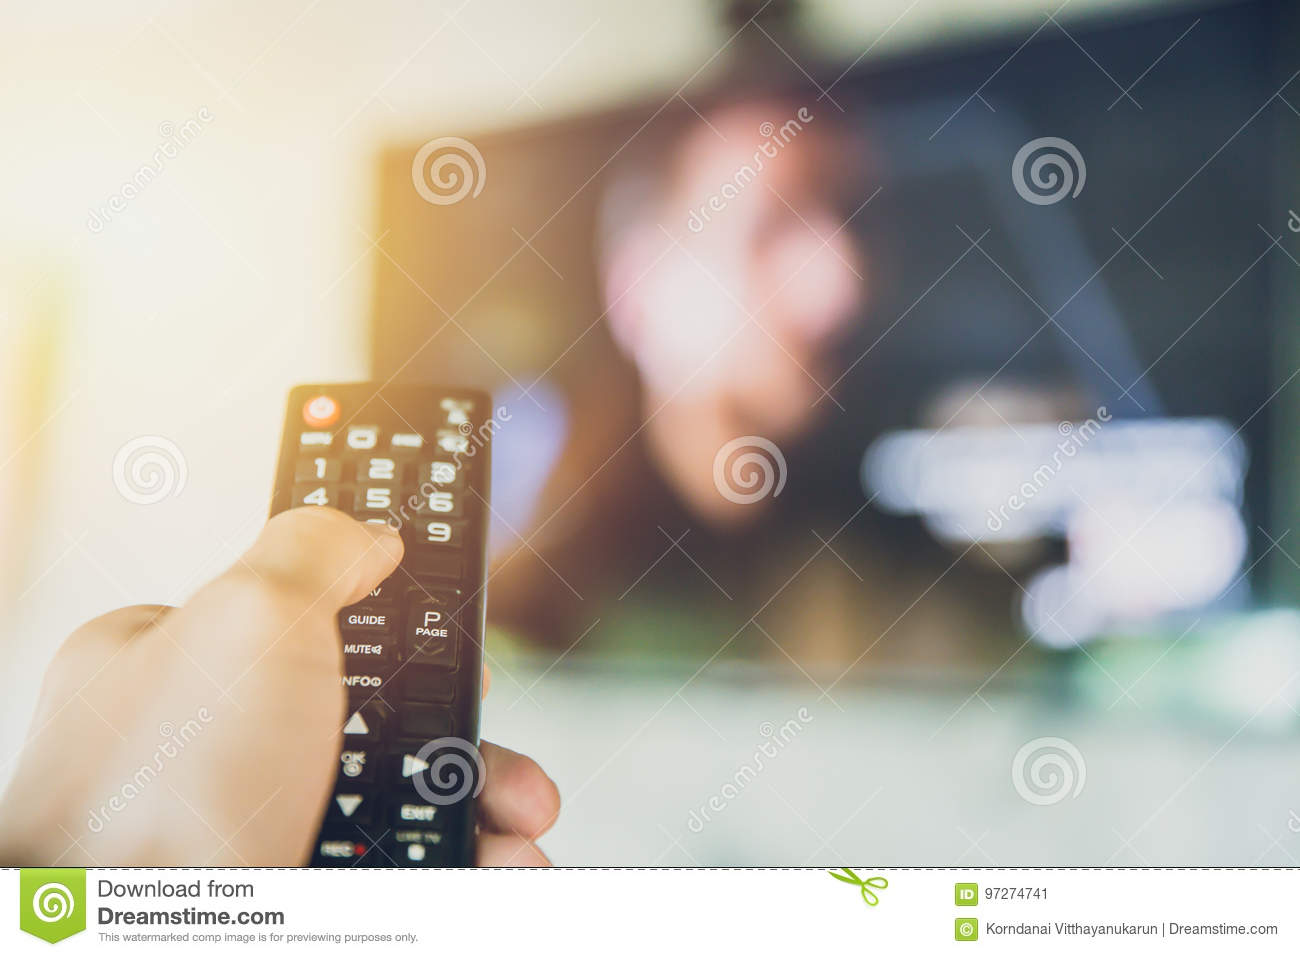 Home entertainment. hand hold Smart TV remote control with a television blur background